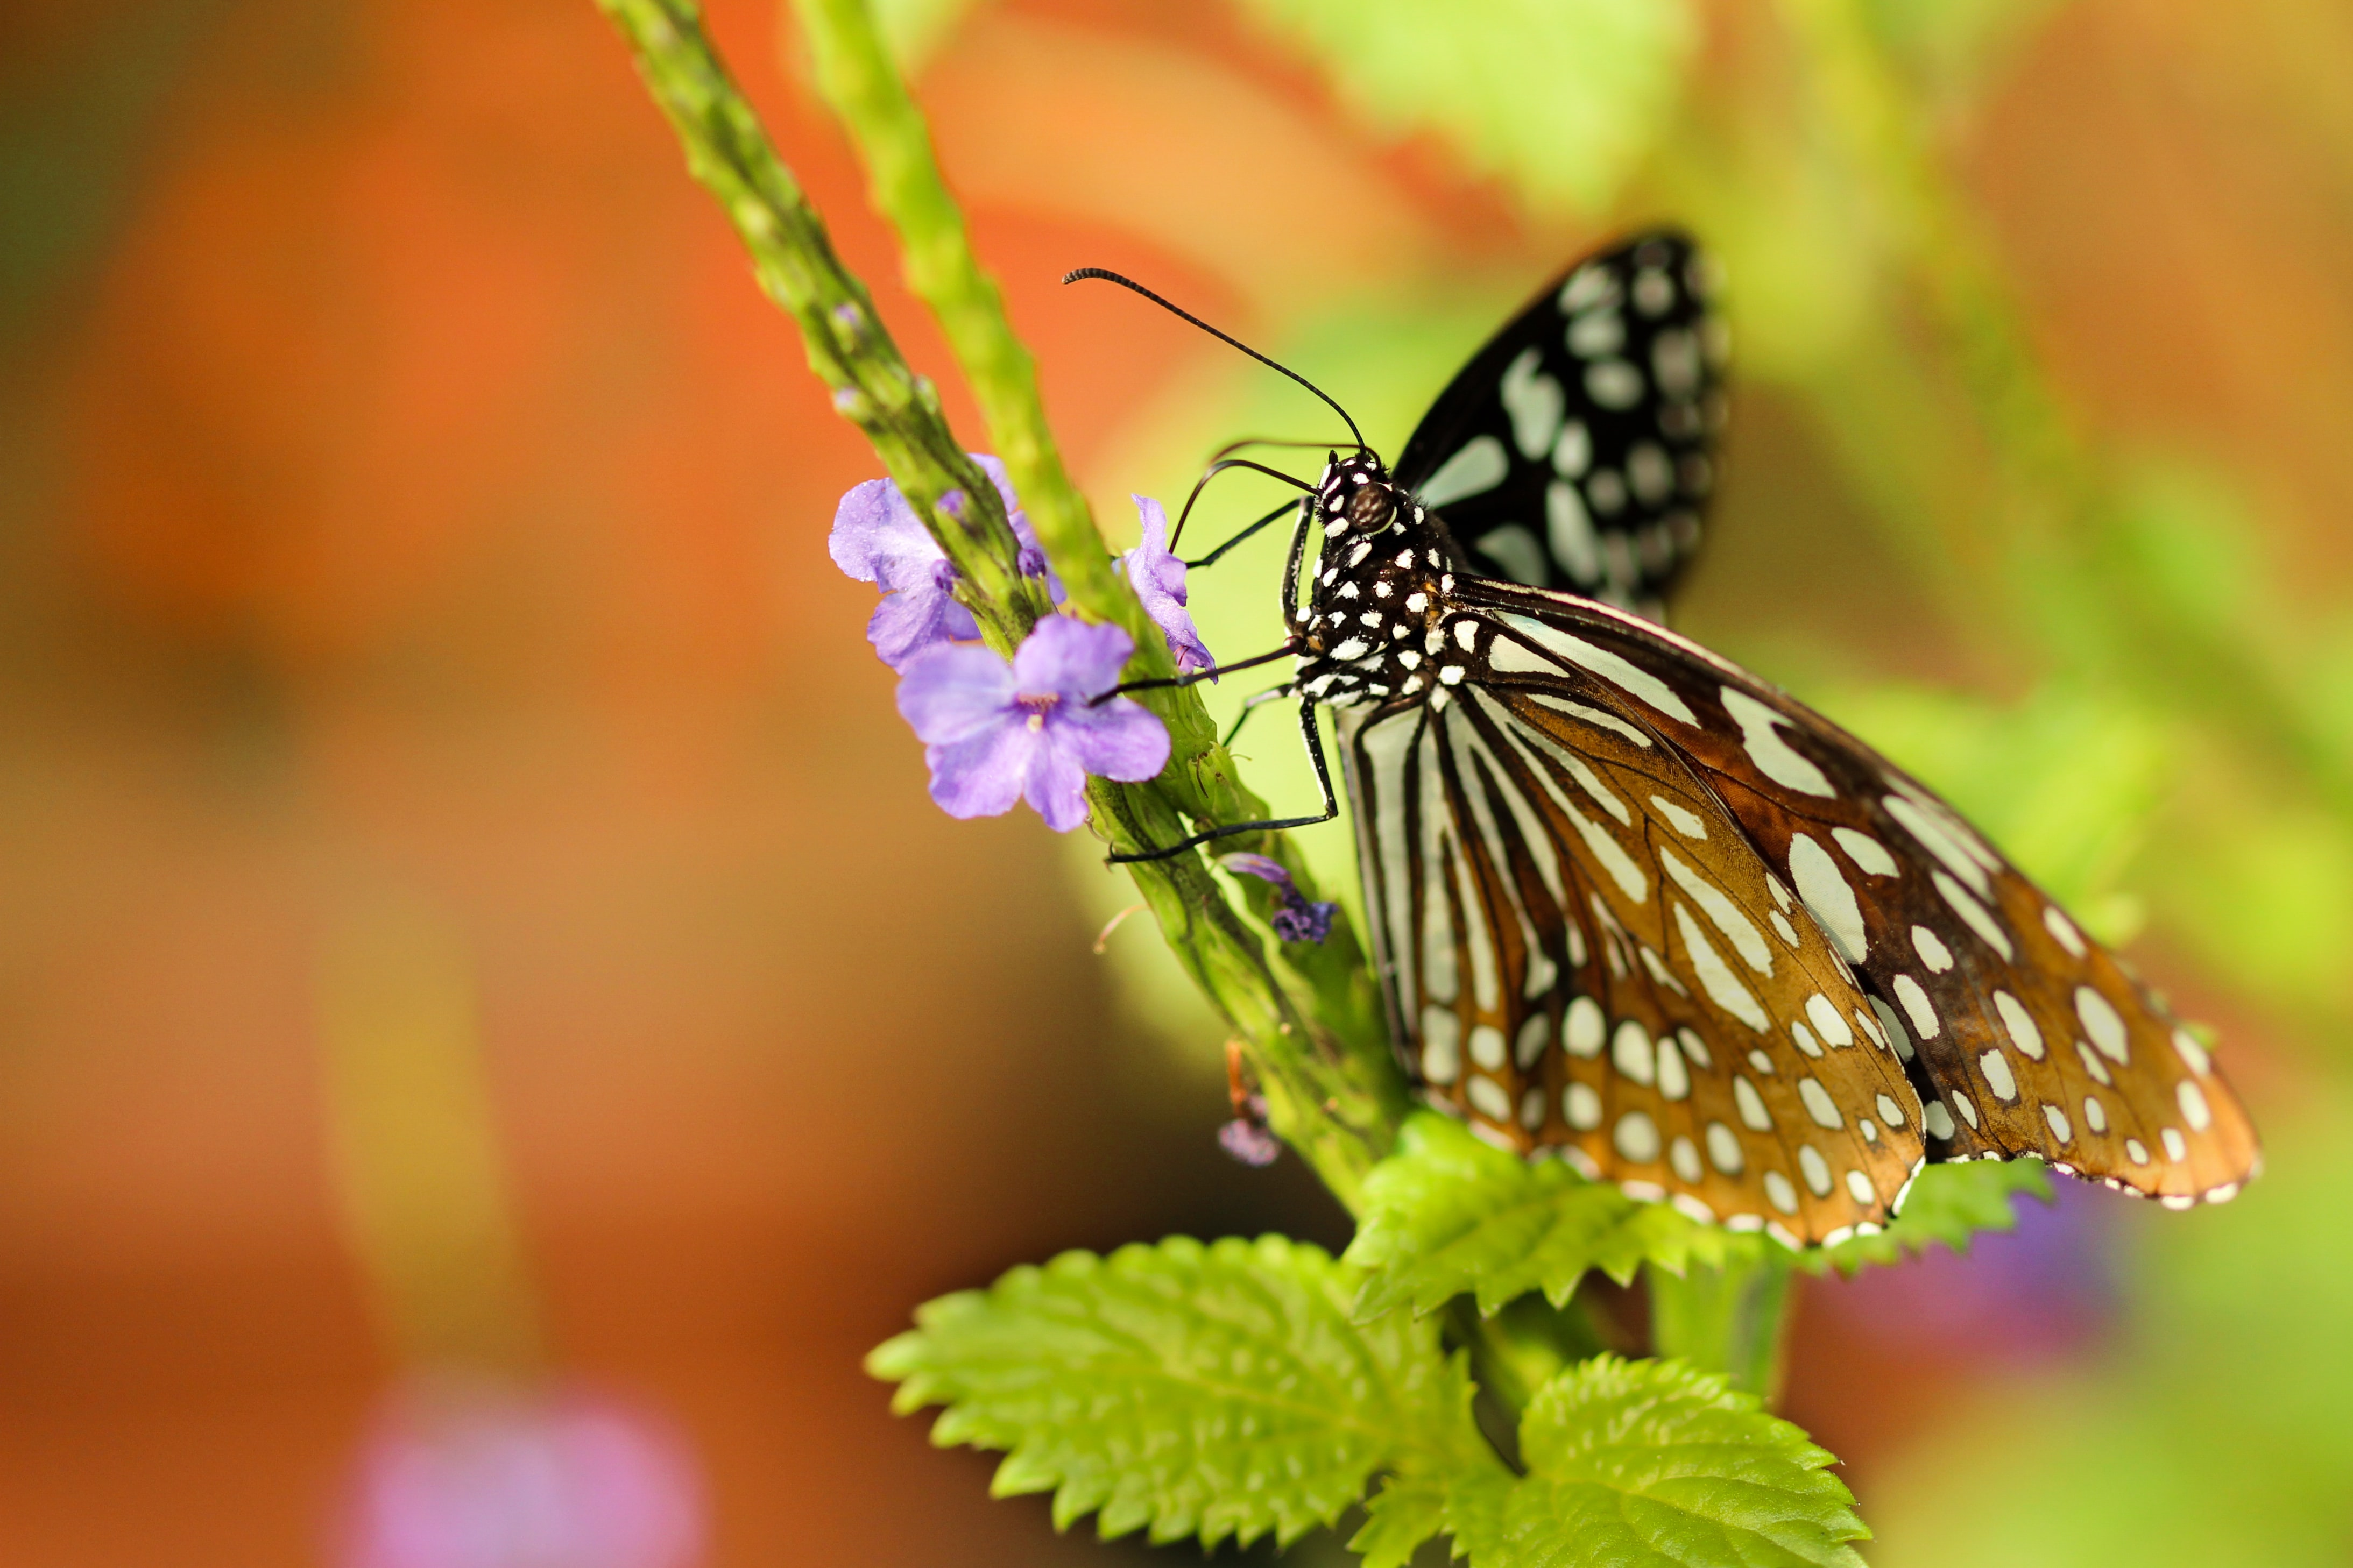 A white monarch butterfly feeding on tiny violet flowers